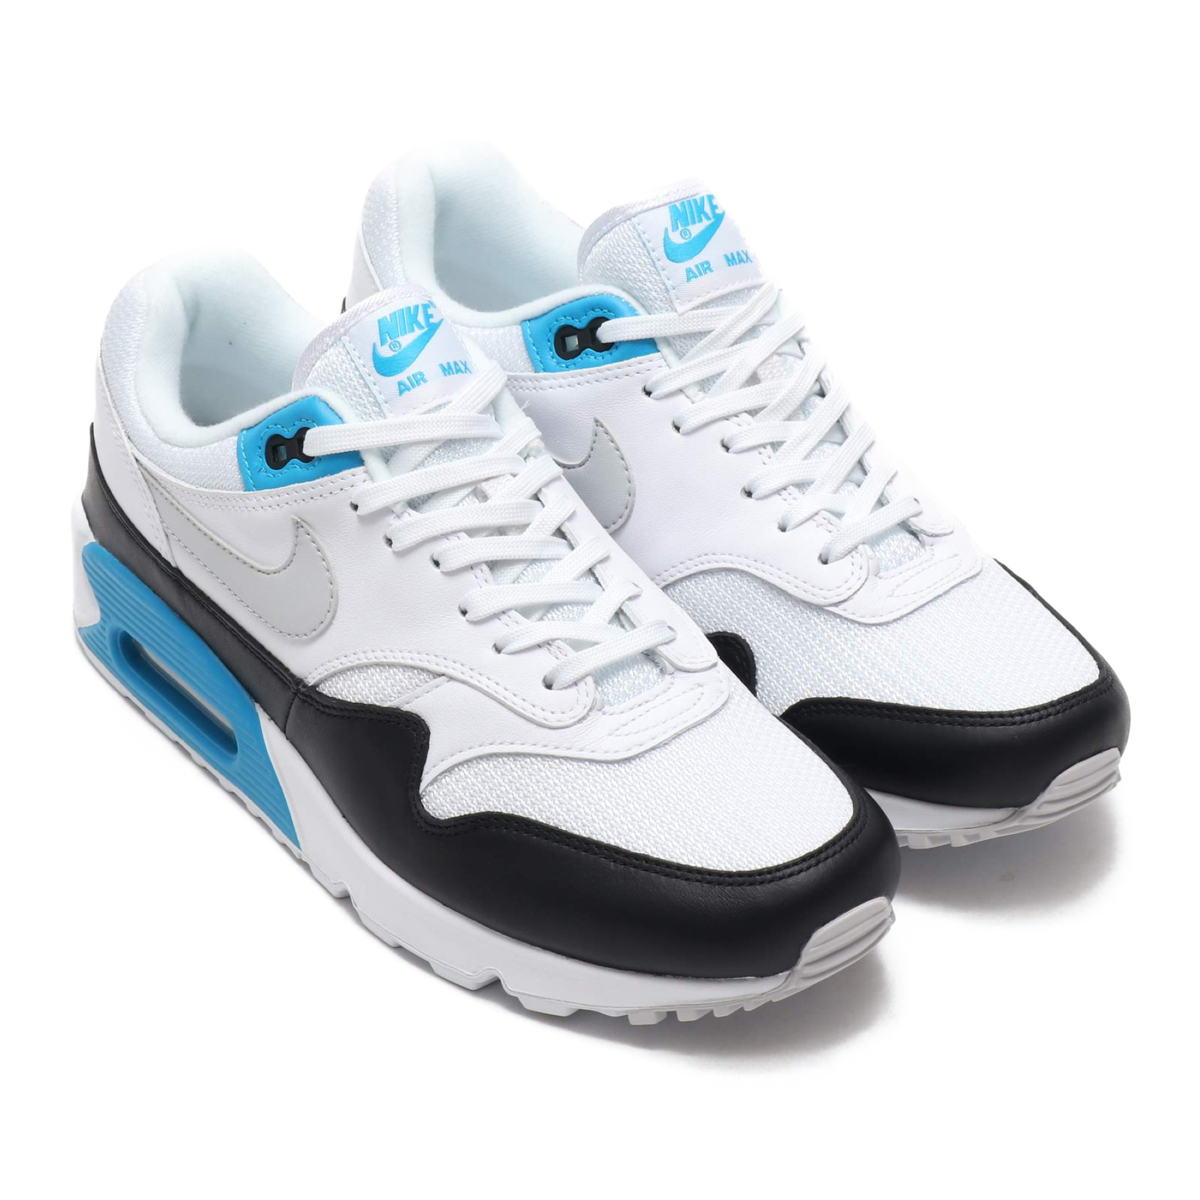 NIKE AIR MAX 90 1 (Kie Ney AMAX 90 1) (WHITE NEUTRAL GREY-BLACK-LASER BLUE)  18FA-S 1f7ef7f1c